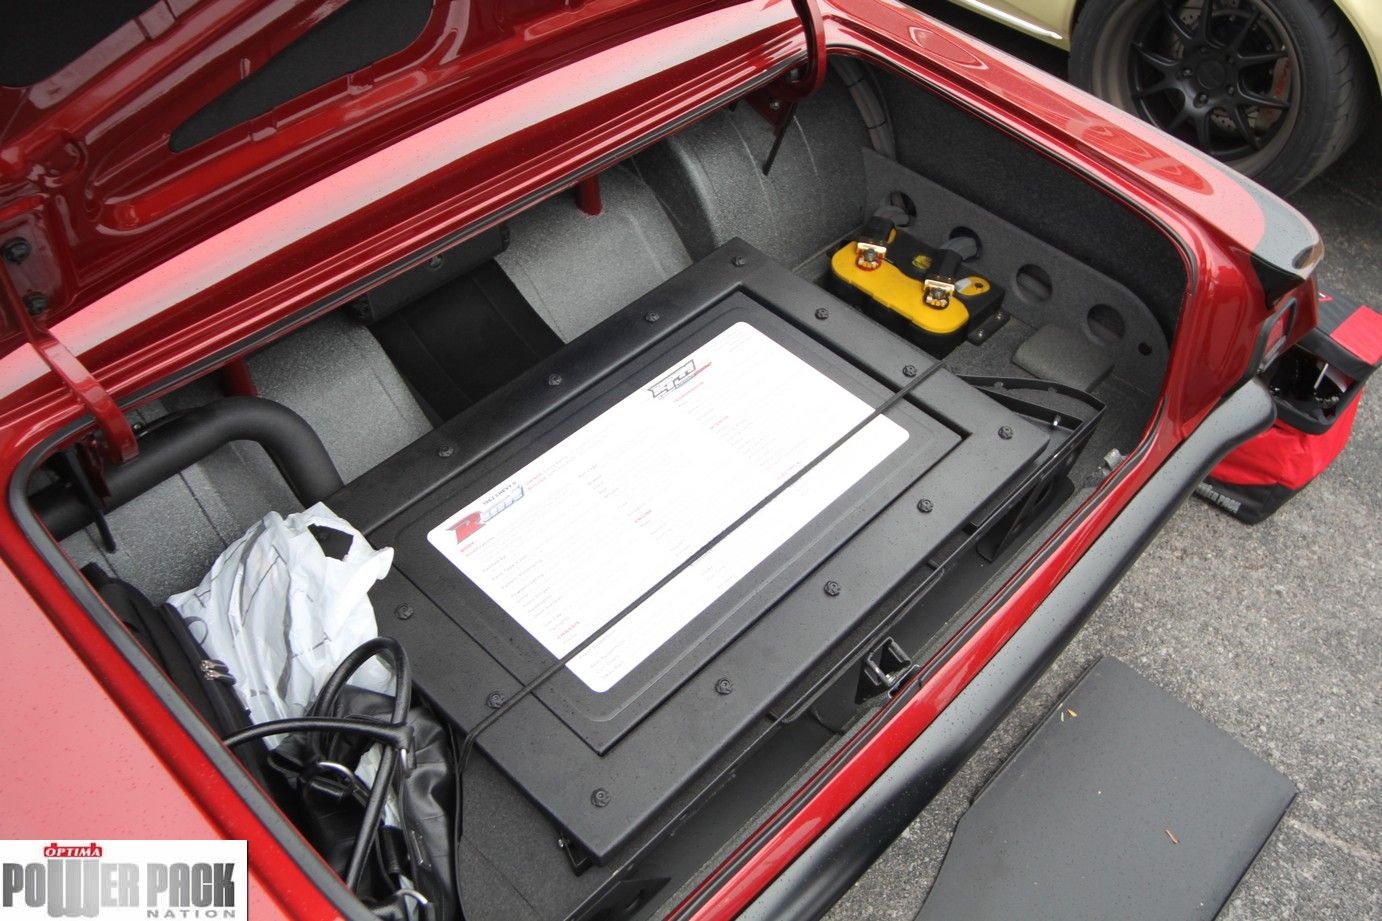 An OPTIMA YELLOWTOP tucked in the trunk of the Runt Nova